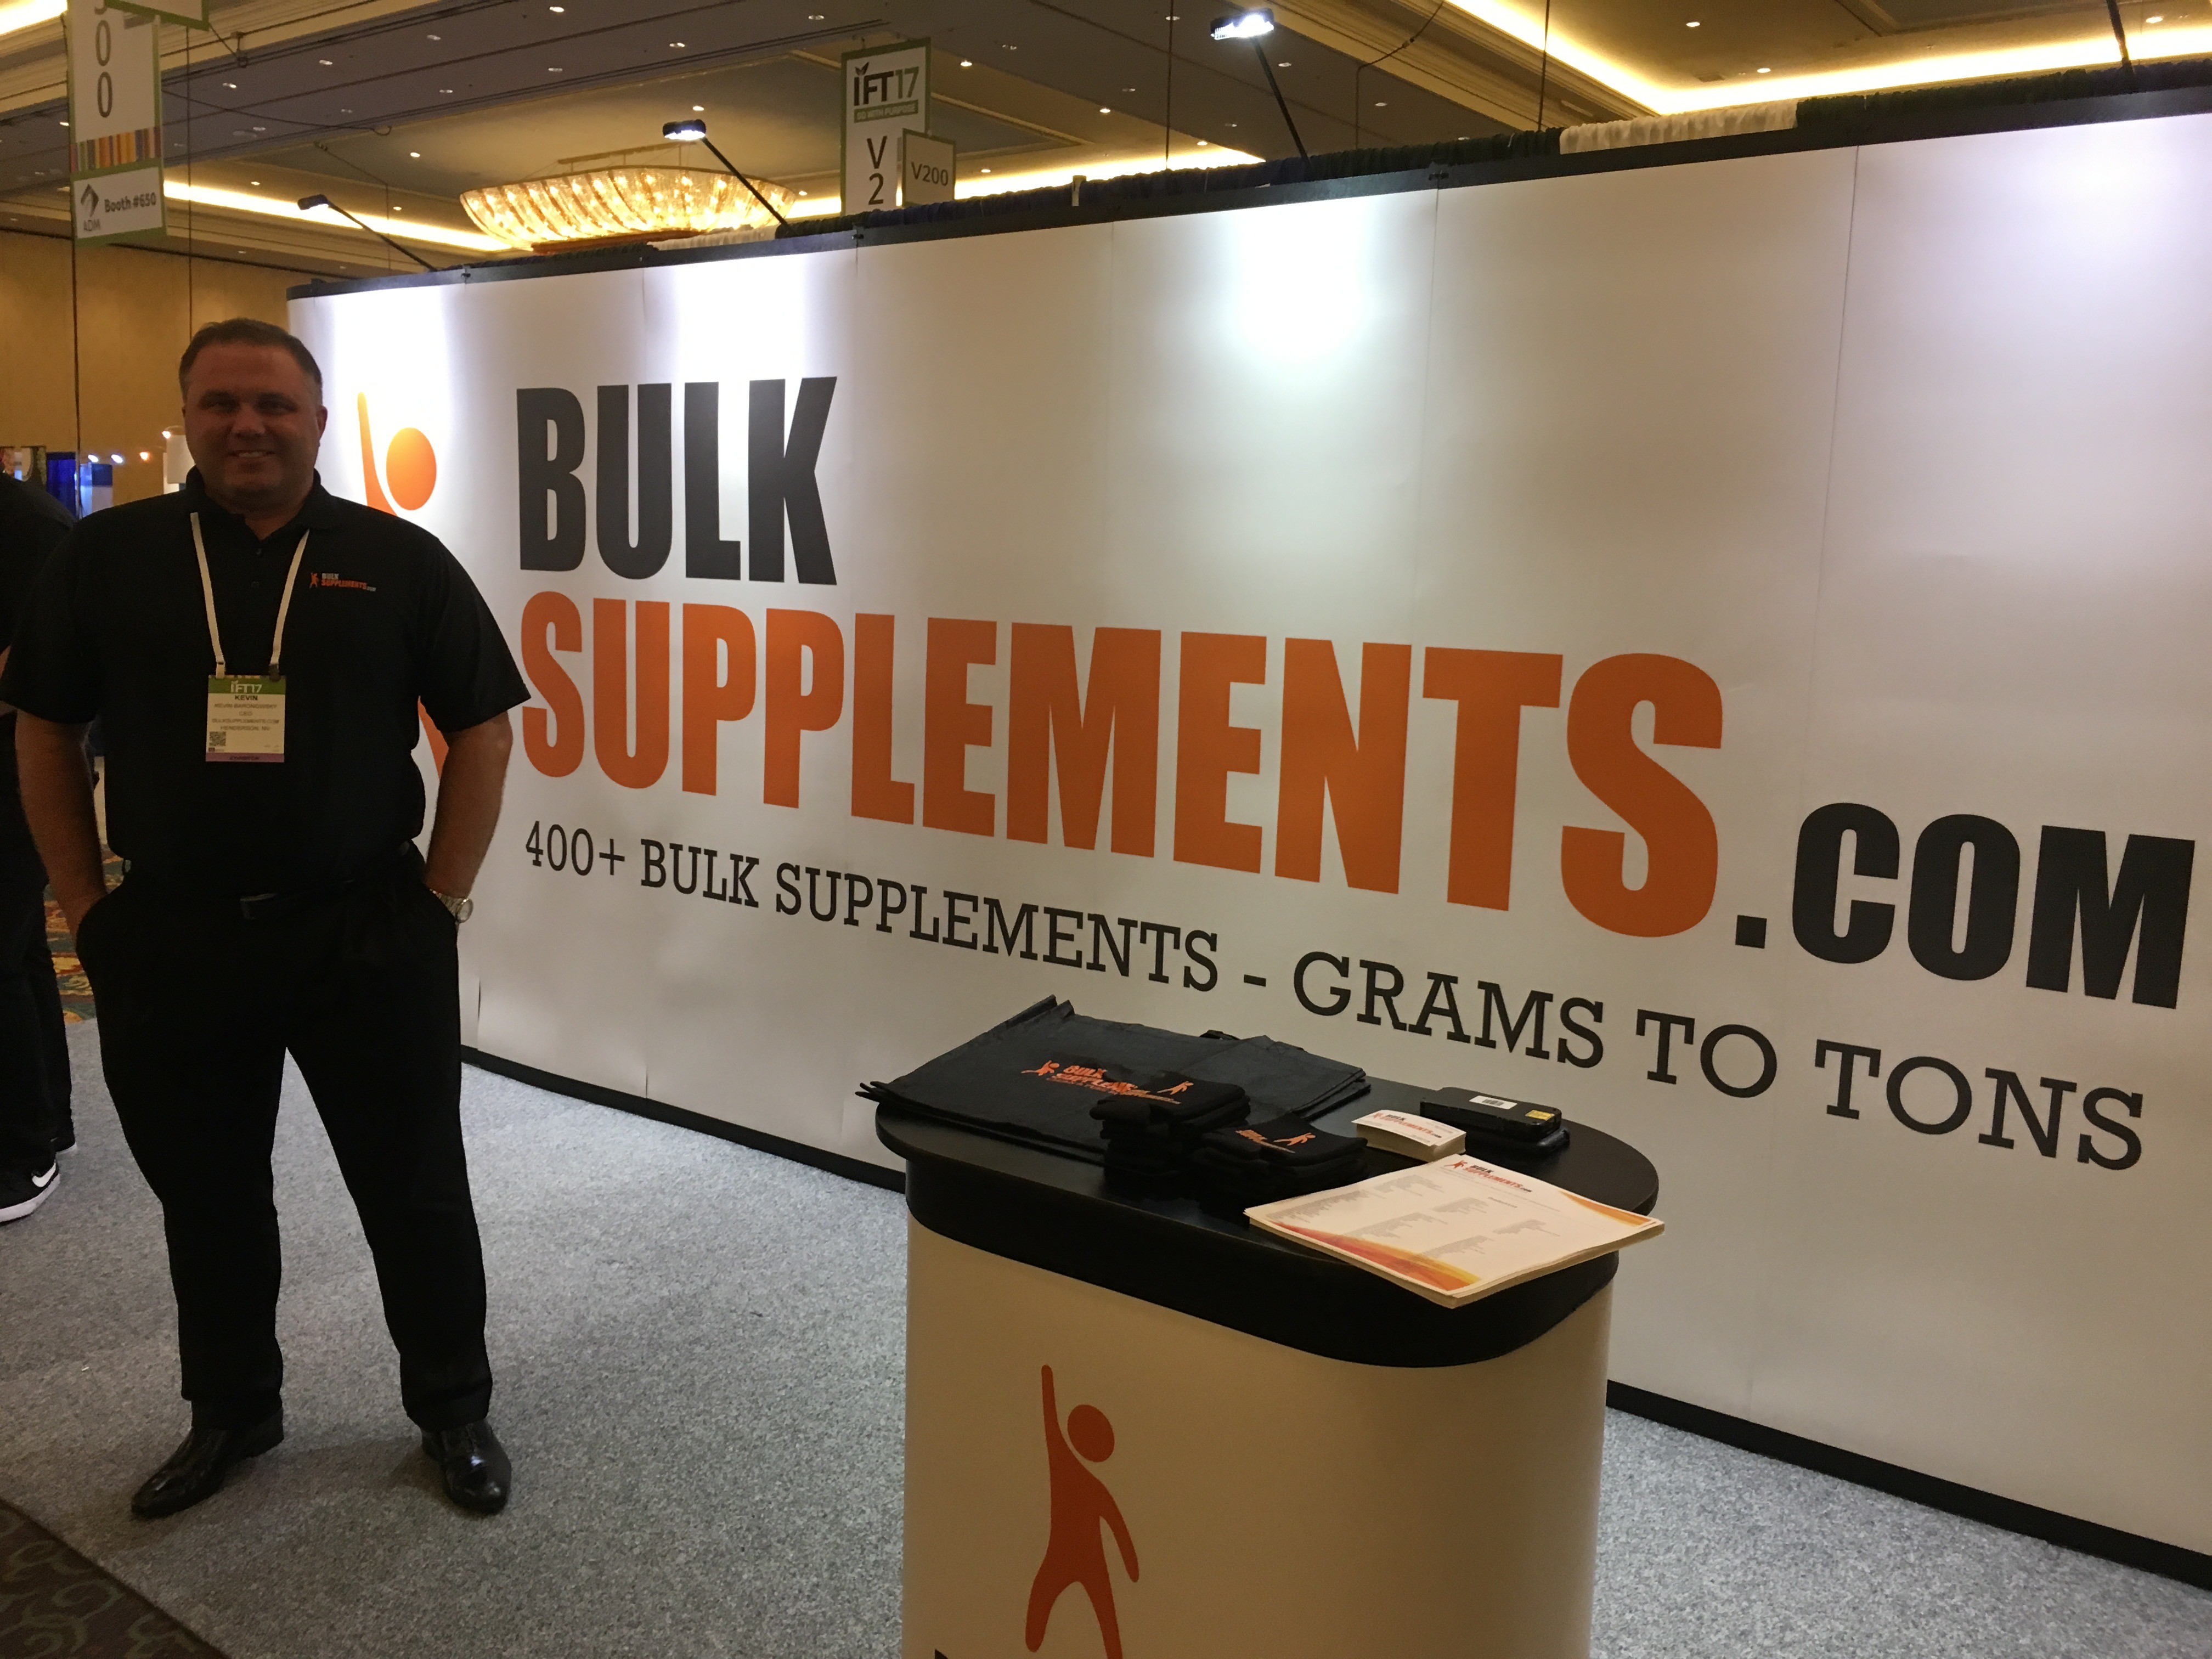 Trade Show Booth Exhibitors : Being proactive in your tradeshow booth tradeshowguy